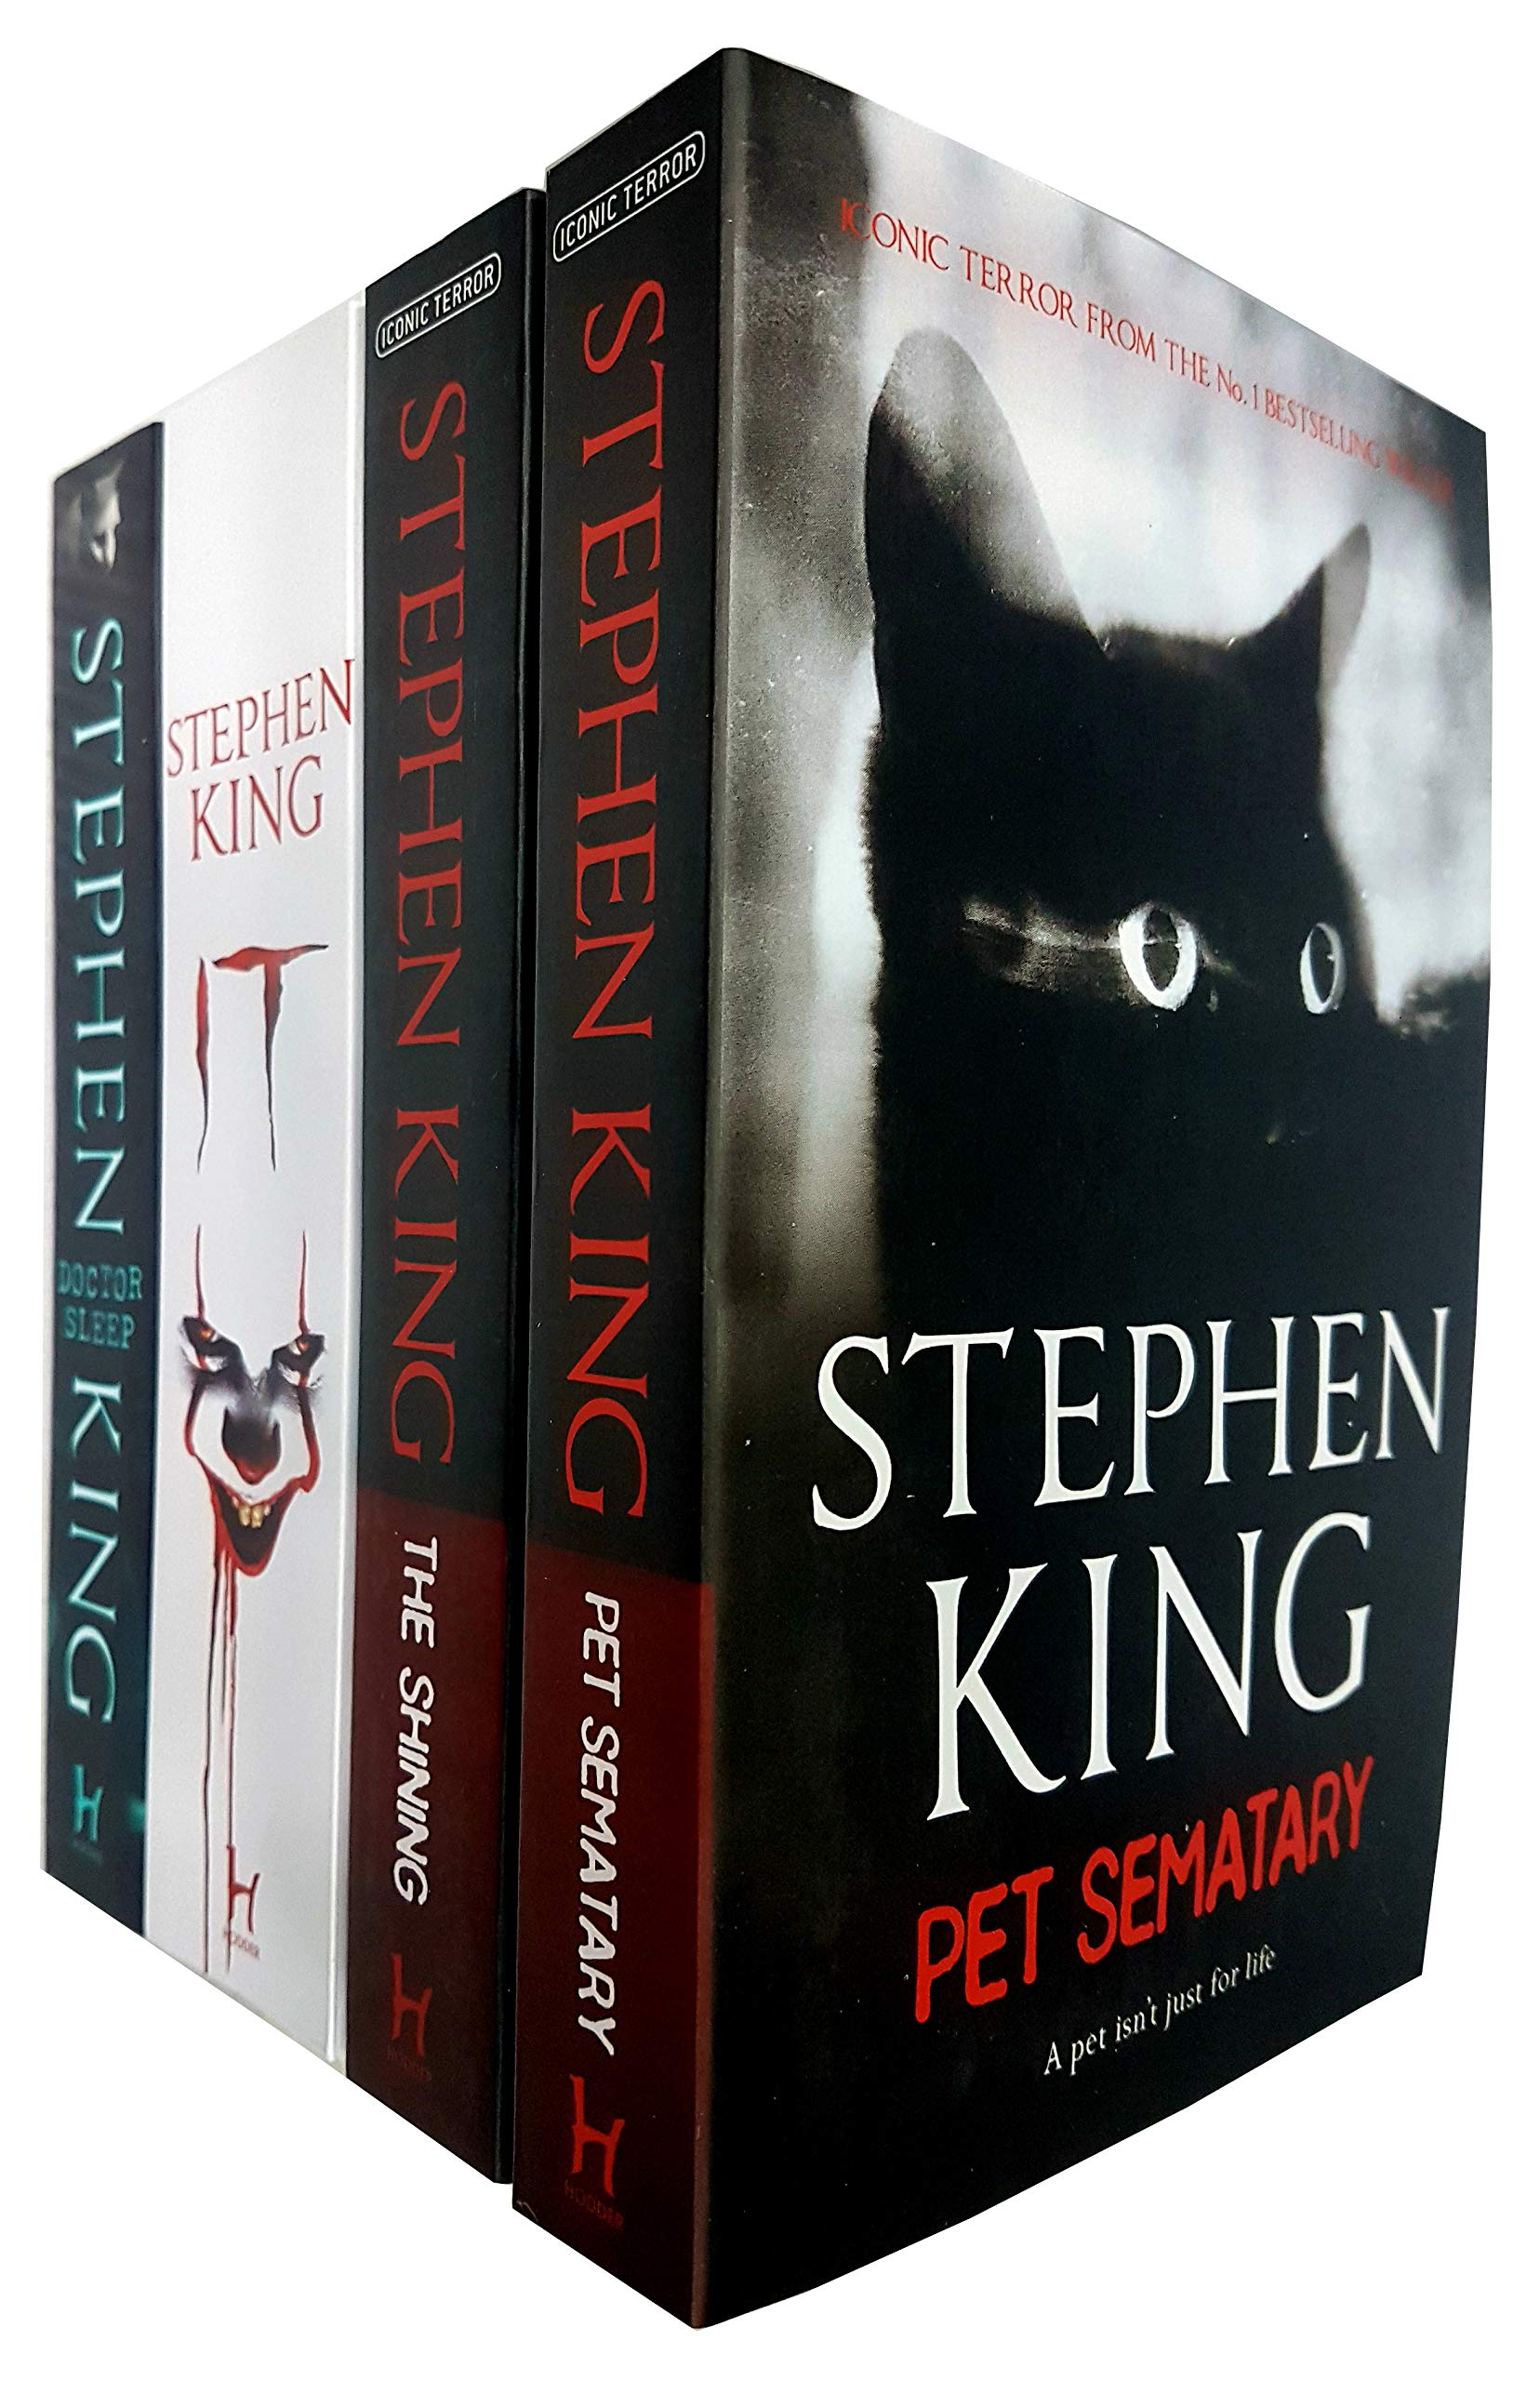 Stephen King Collection 4 Books Set (Pet Sematary, The Shining, It, Doctor Sleep) by Hodder Paperbacks